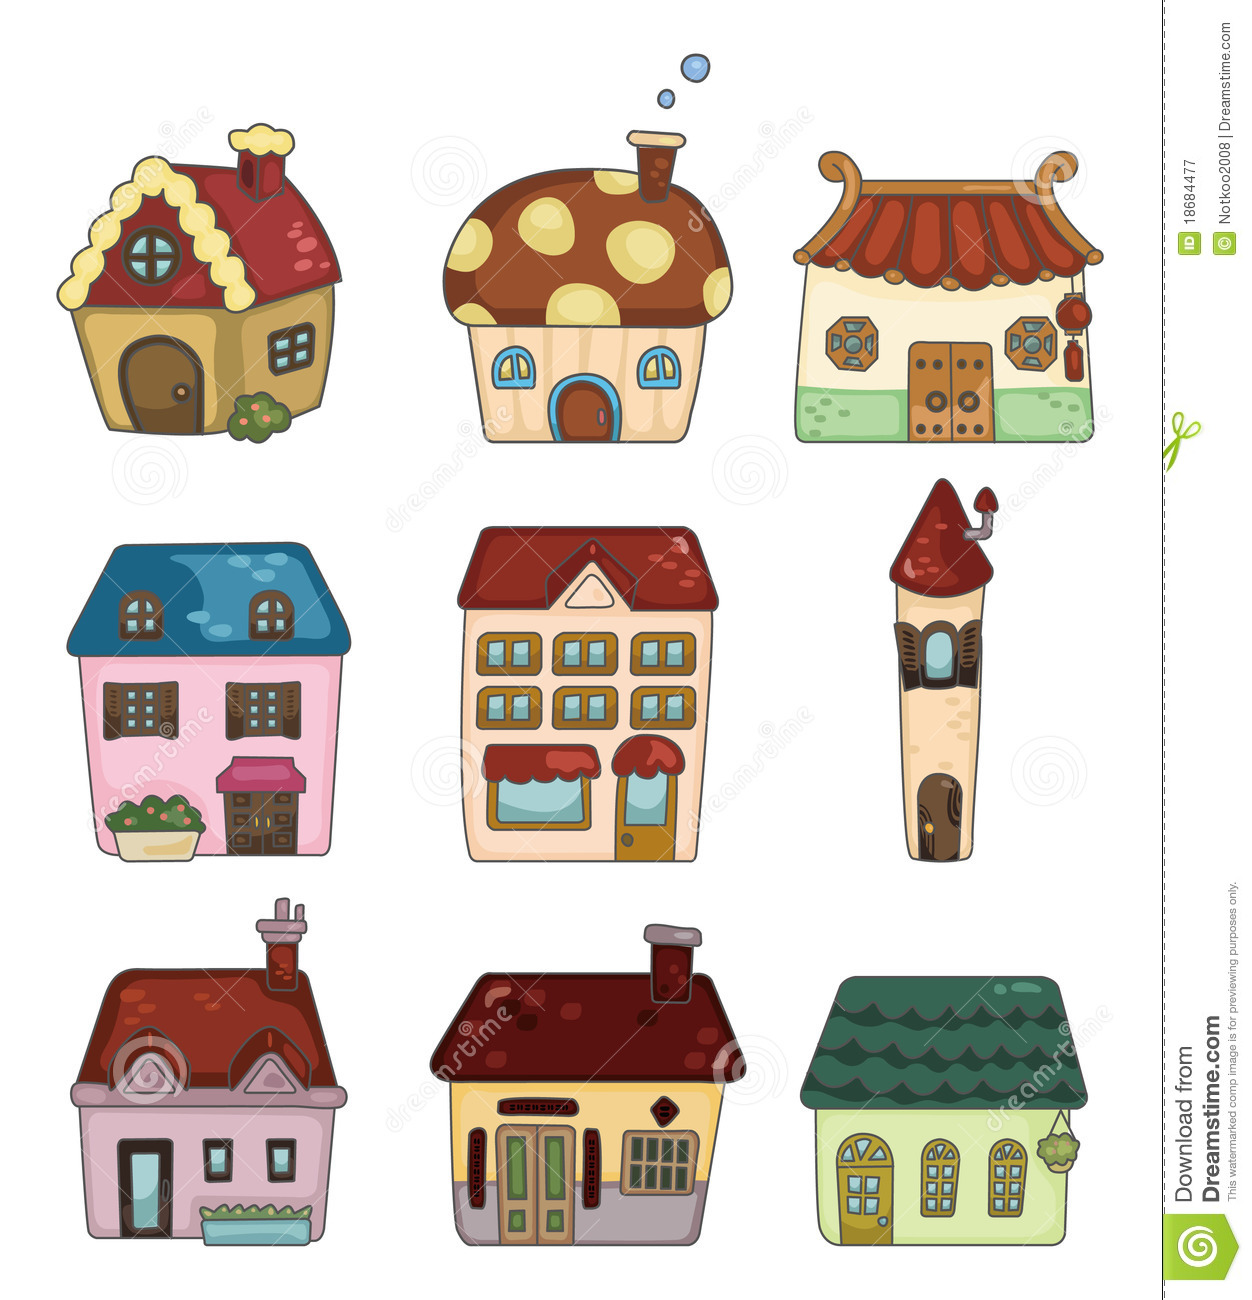 Cartoon house icon royalty free stock photography image for Dessin maison